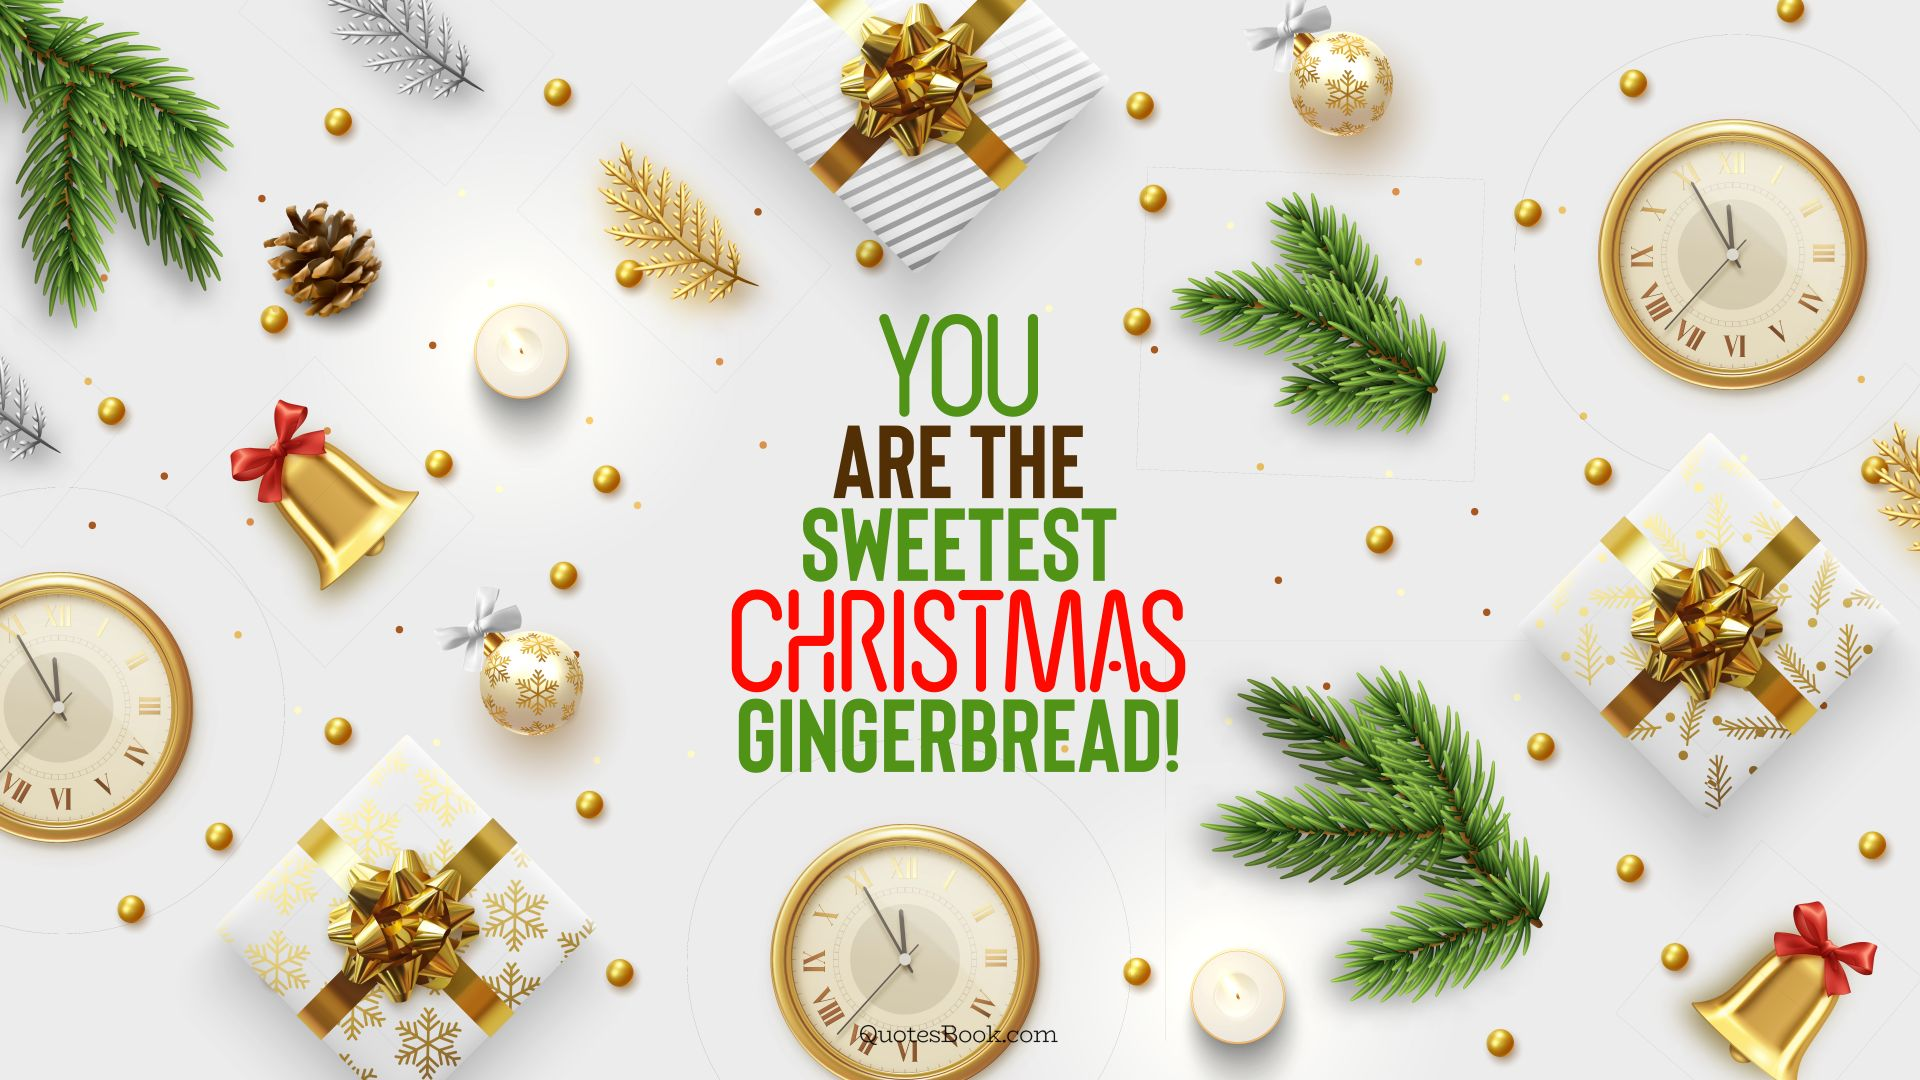 You are the sweetest Christmas gingerbread!. - Quote by QuotesBook